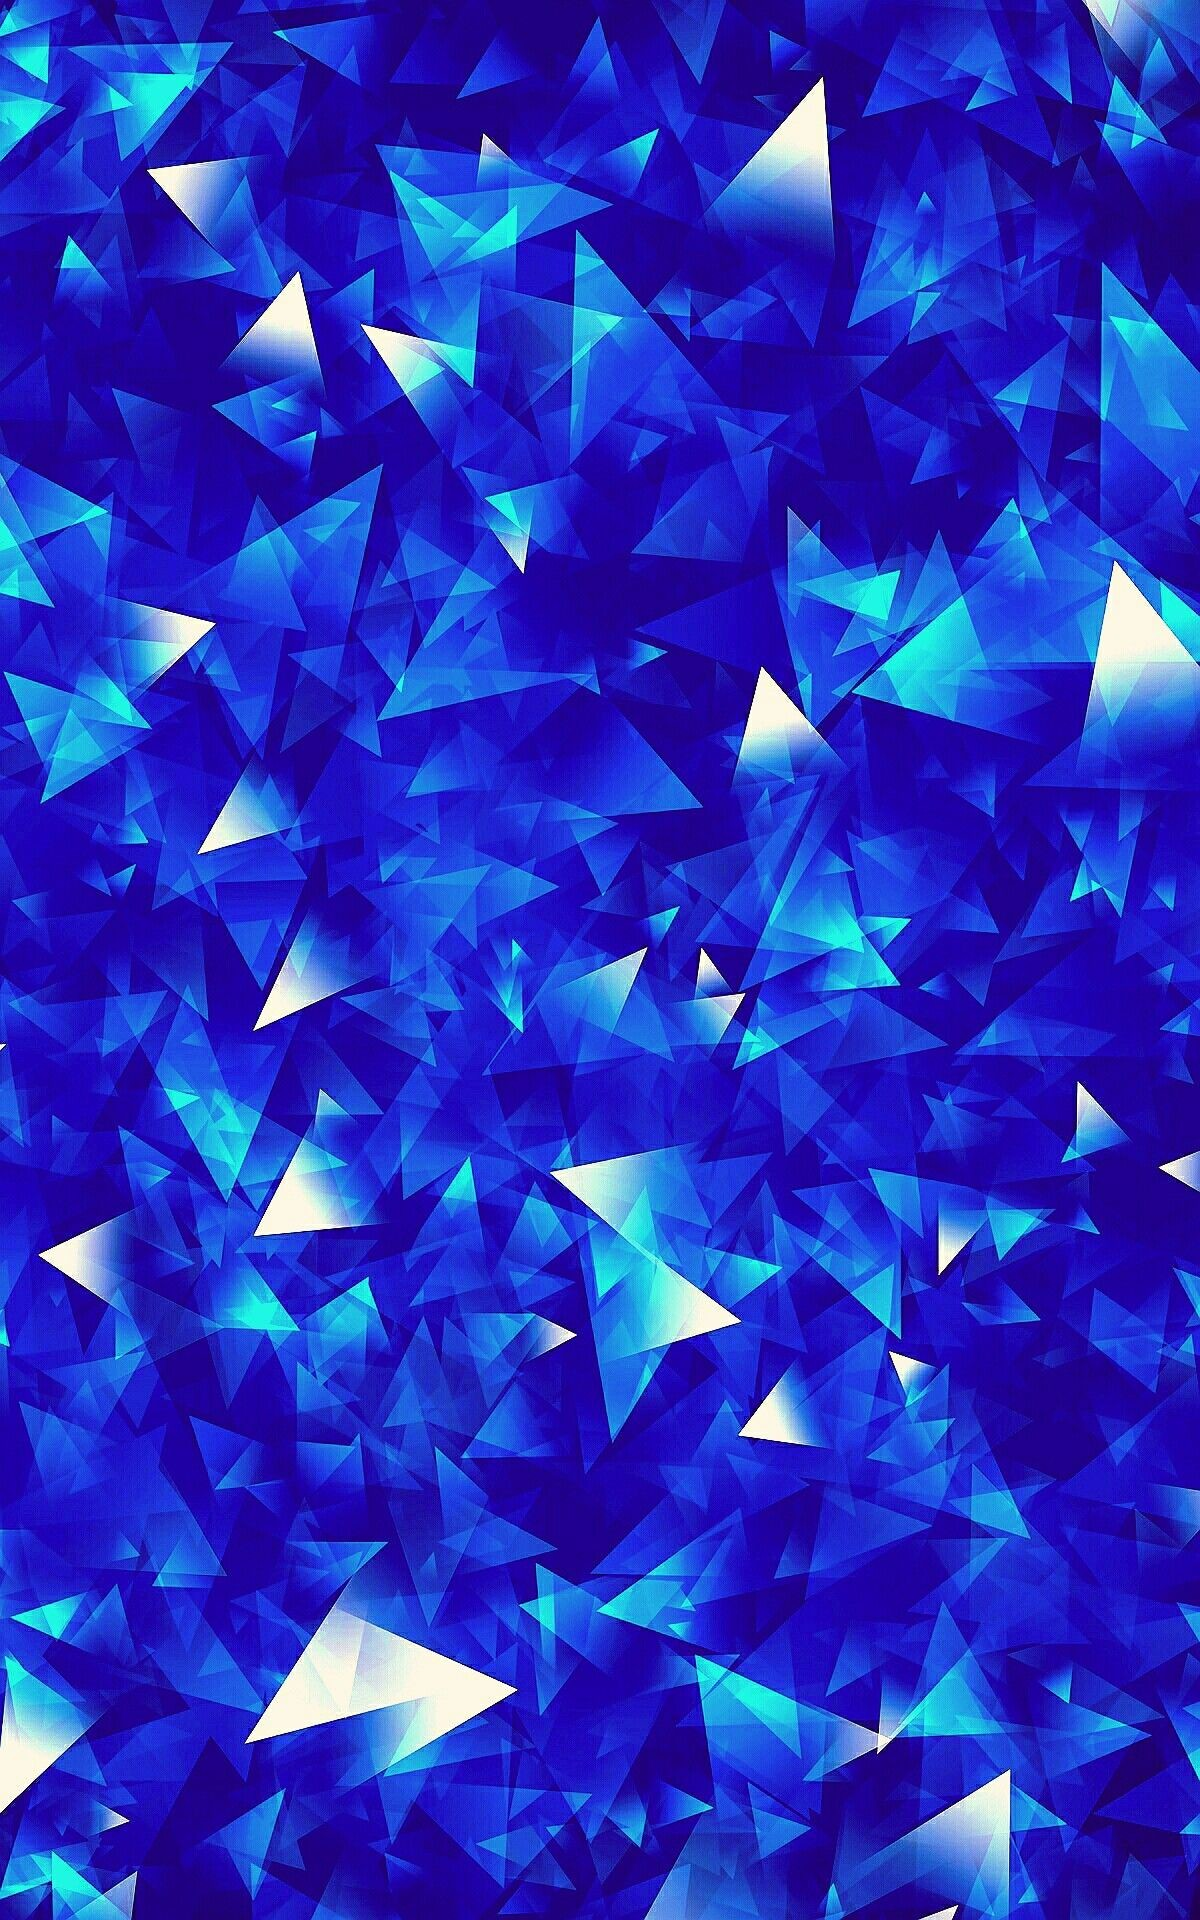 Blue Wallpaper_pattern